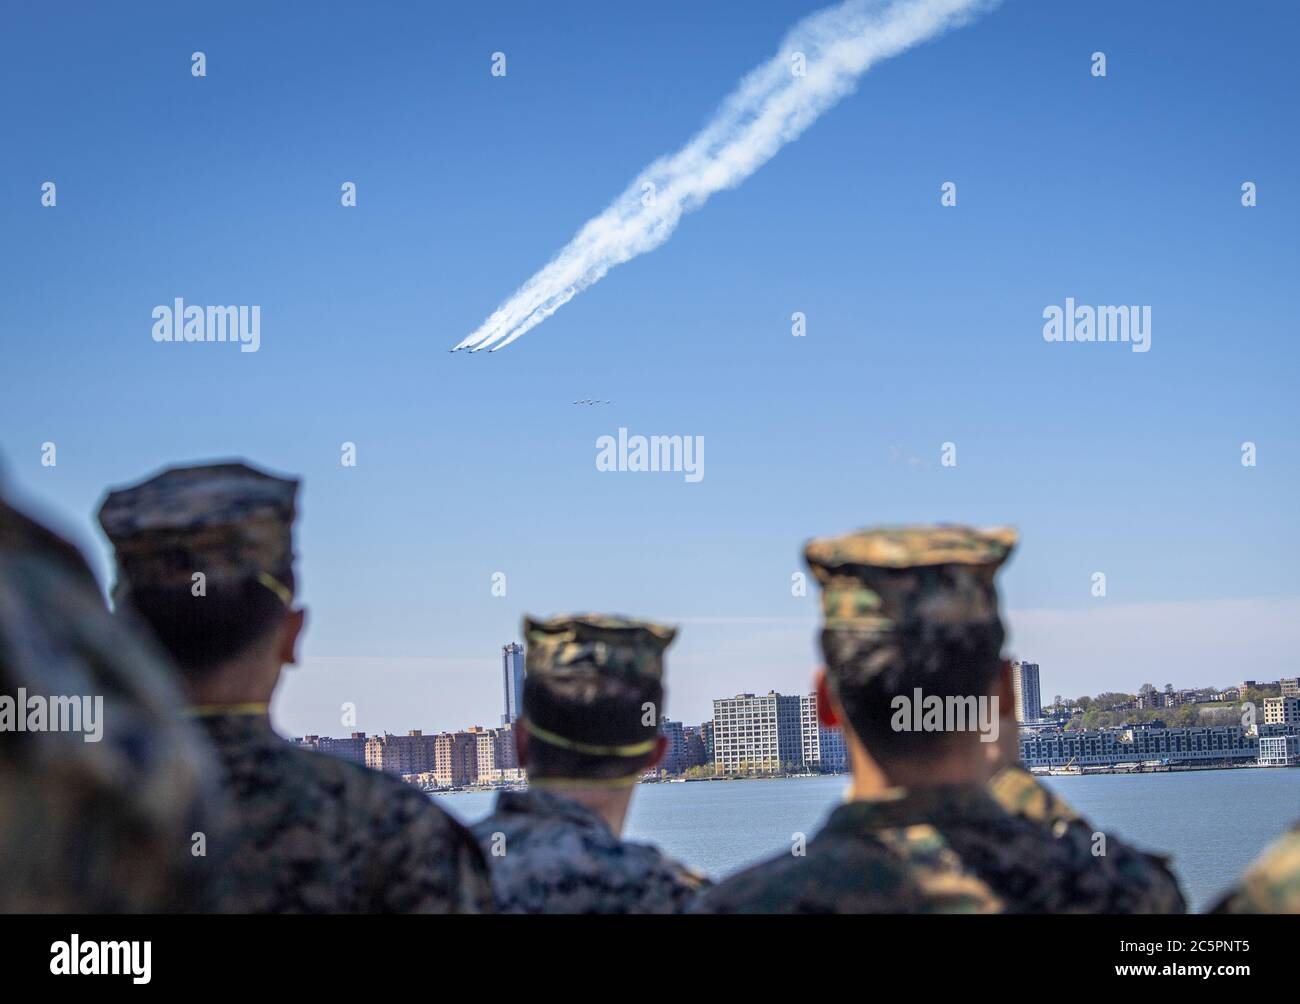 Manhattan, United States Of America. 29th Apr, 2020. NEW YORK (April 28, 2020) The U.S. Navy Flight Demonstration Squadron, the Blue Angels, and the U.S. Air Force Air Demonstration Squadron, the Thunderbirds, honor frontline COVID-19 responders and essential workers with a formation flight over New York City. A formation of six F/A-18C/D Hornet aircraft and six F-16C/D Fighting Falcon, conduct the flyovers as a collaborative salute to healthcare workers, first responders, military and other essential personnel. Credit: Storms Media Group/Alamy Live News Stock Photo